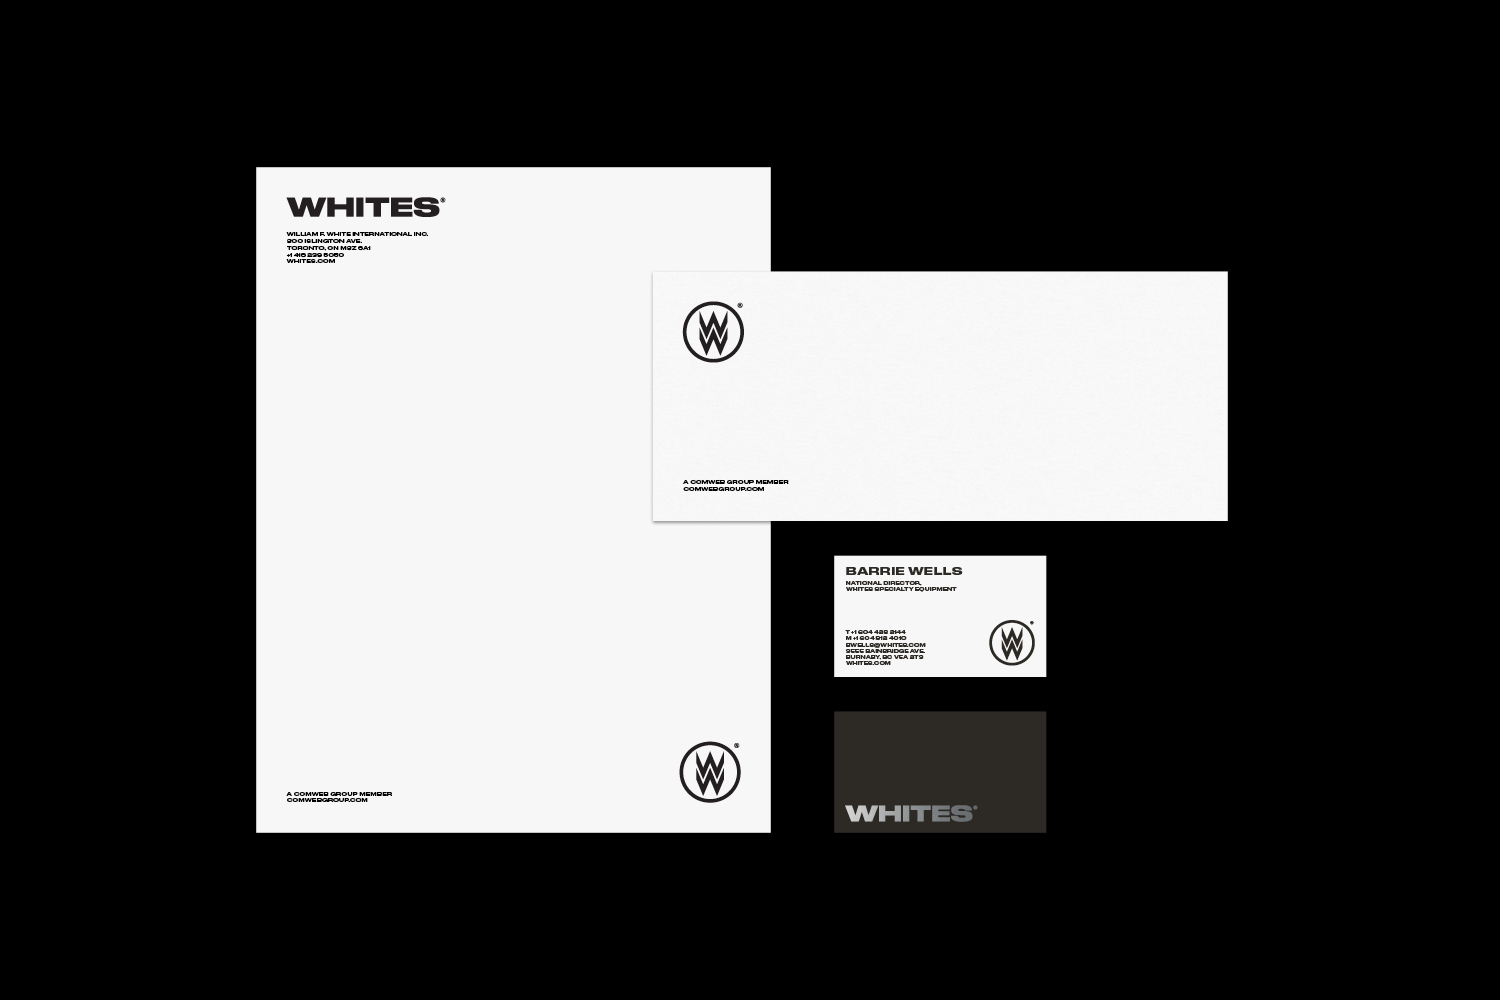 Whites-stationery.jpg